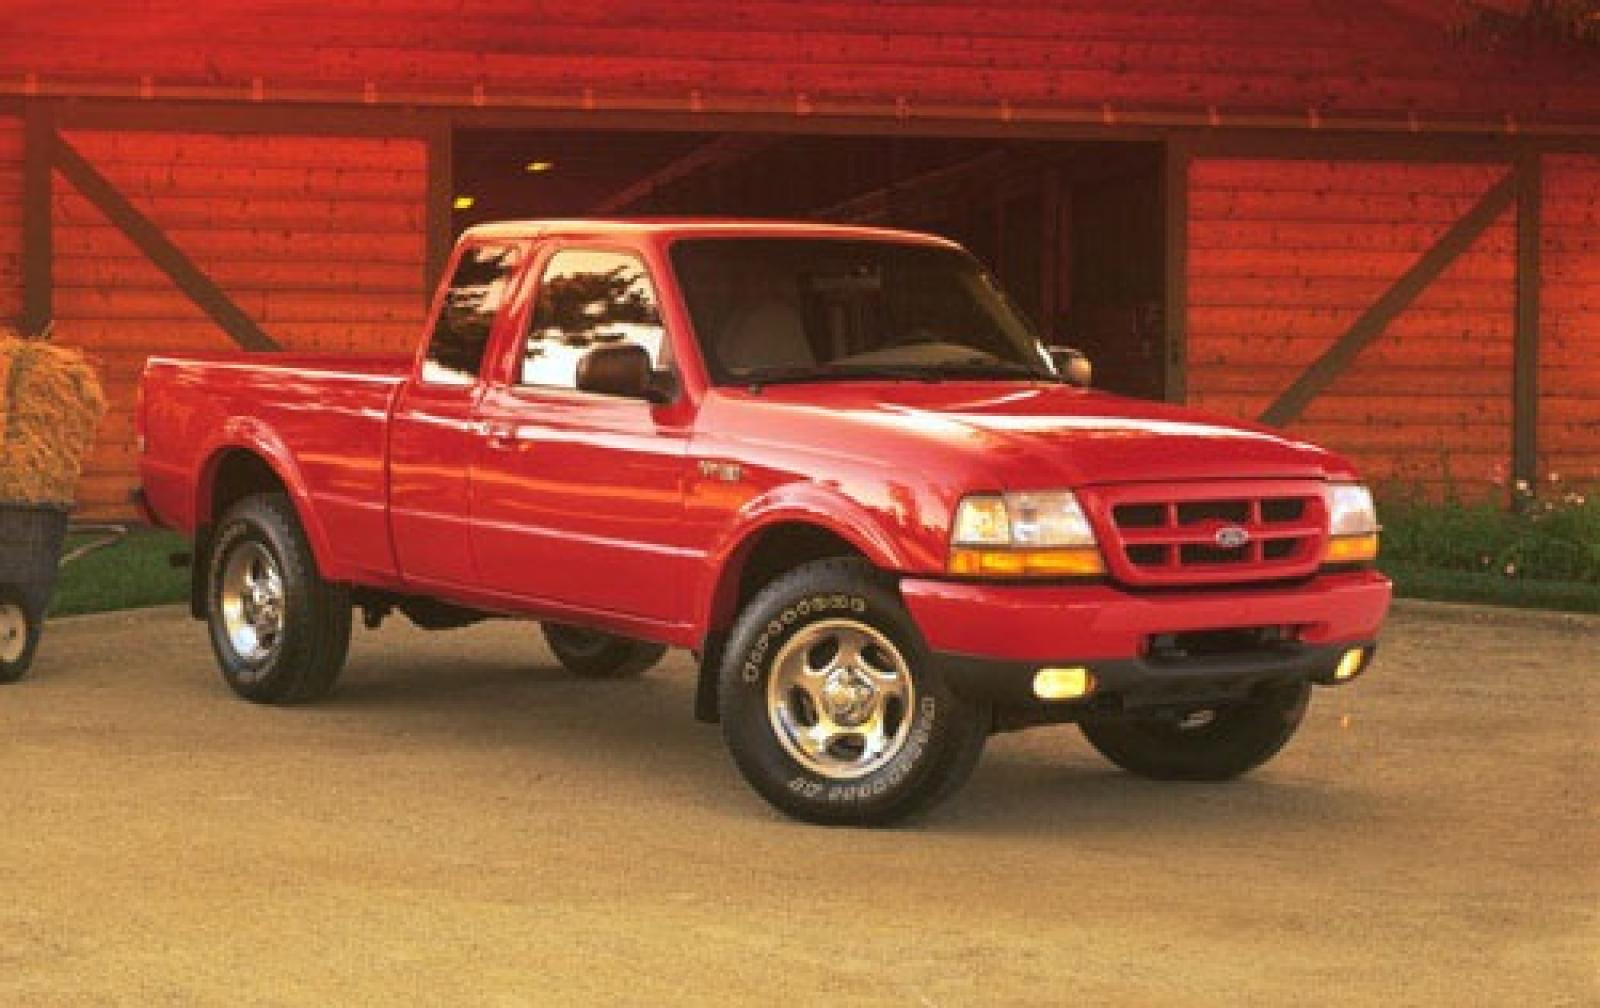 1999 ford ranger 1 800 1024 1280 1600 origin